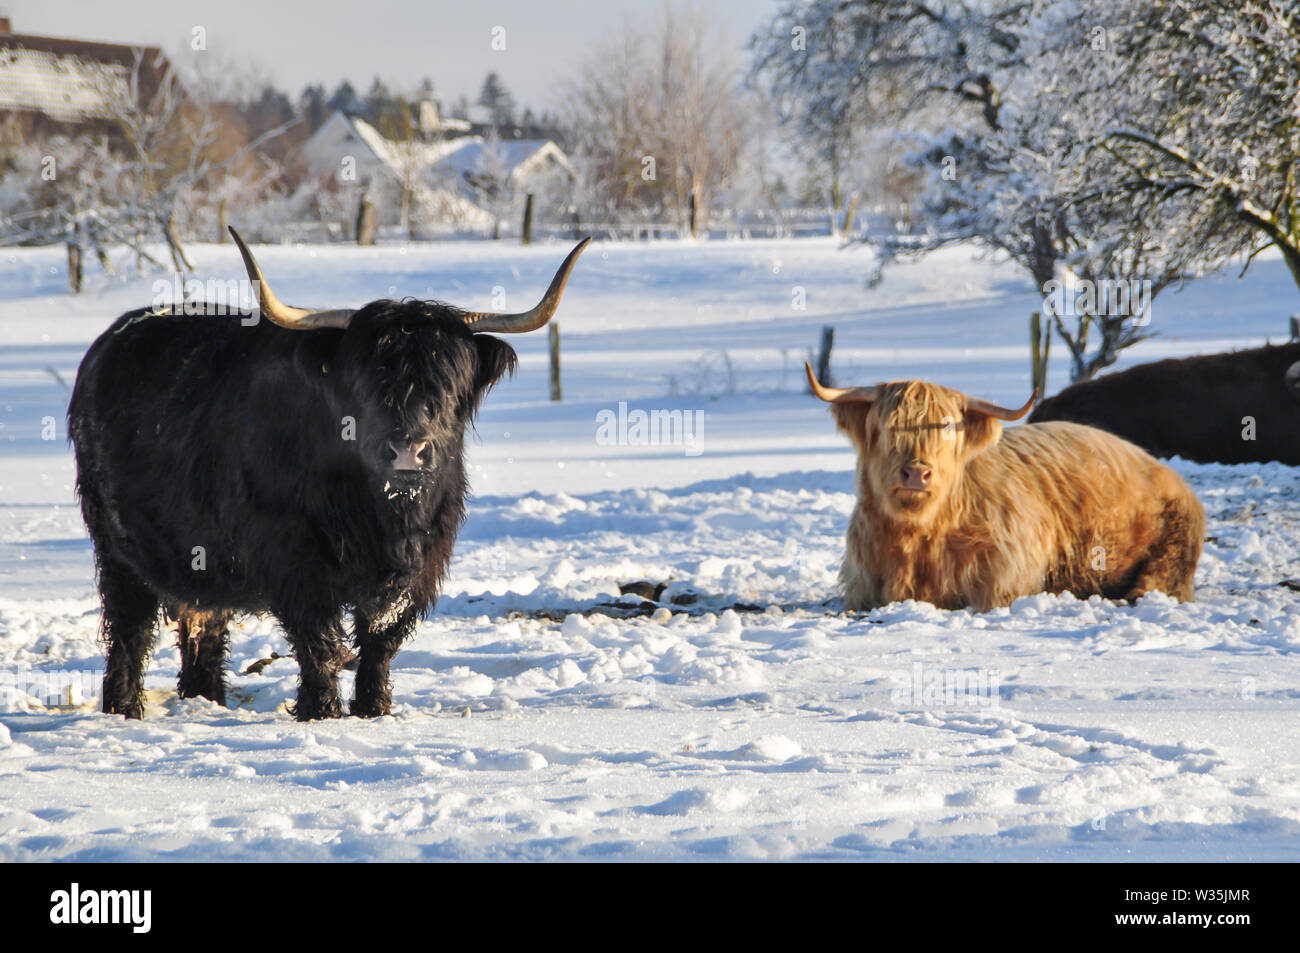 A black and a beige highland cattle on snow-covered paddock. The longhorns are shining in the white snowy landscape. In the background is a housing es - Stock Image